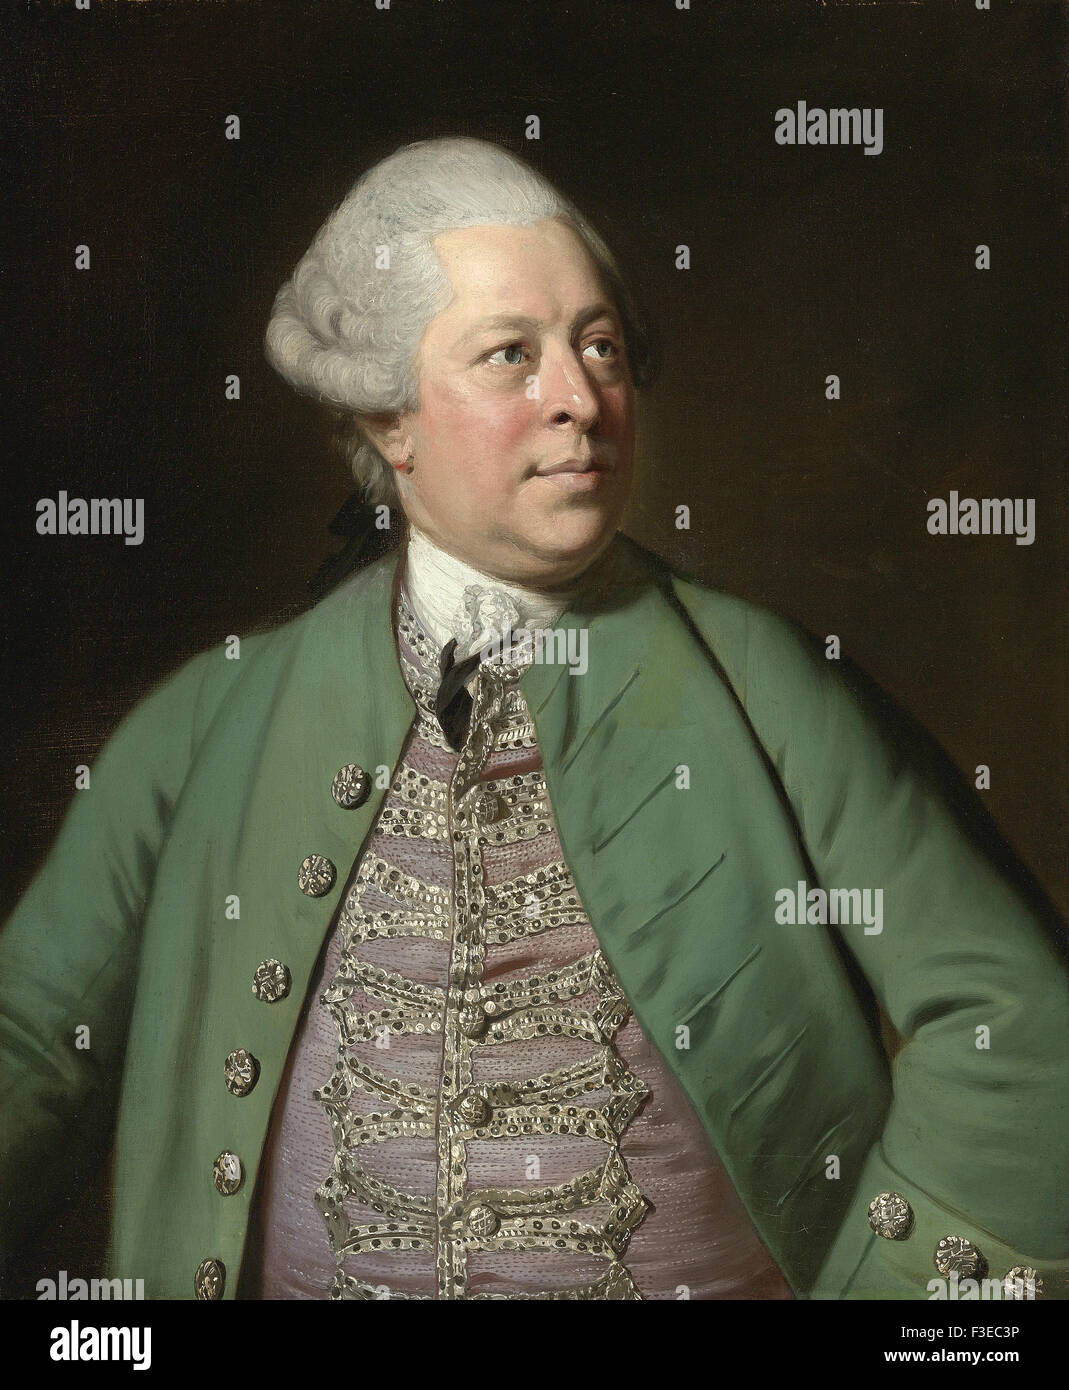 Sir Joshua Reynolds - Portrait of Edward Holden Cruttenden - Stock Image